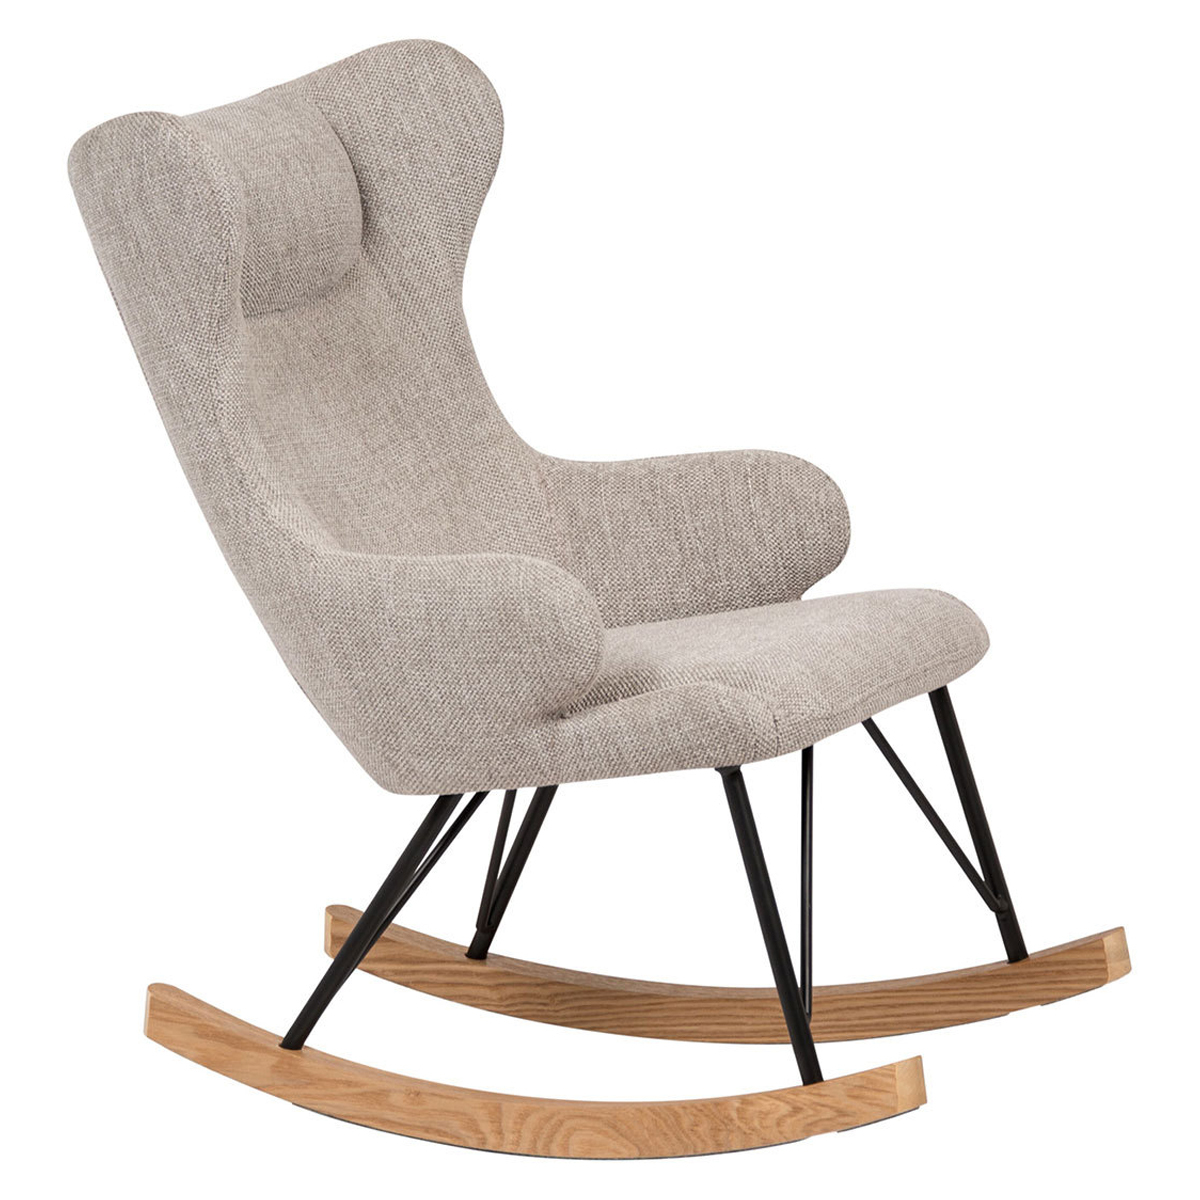 Fauteuil Rocking Kids Chair De Luxe - Sand Grey Rocking Kids Chair De Luxe - Sand Grey